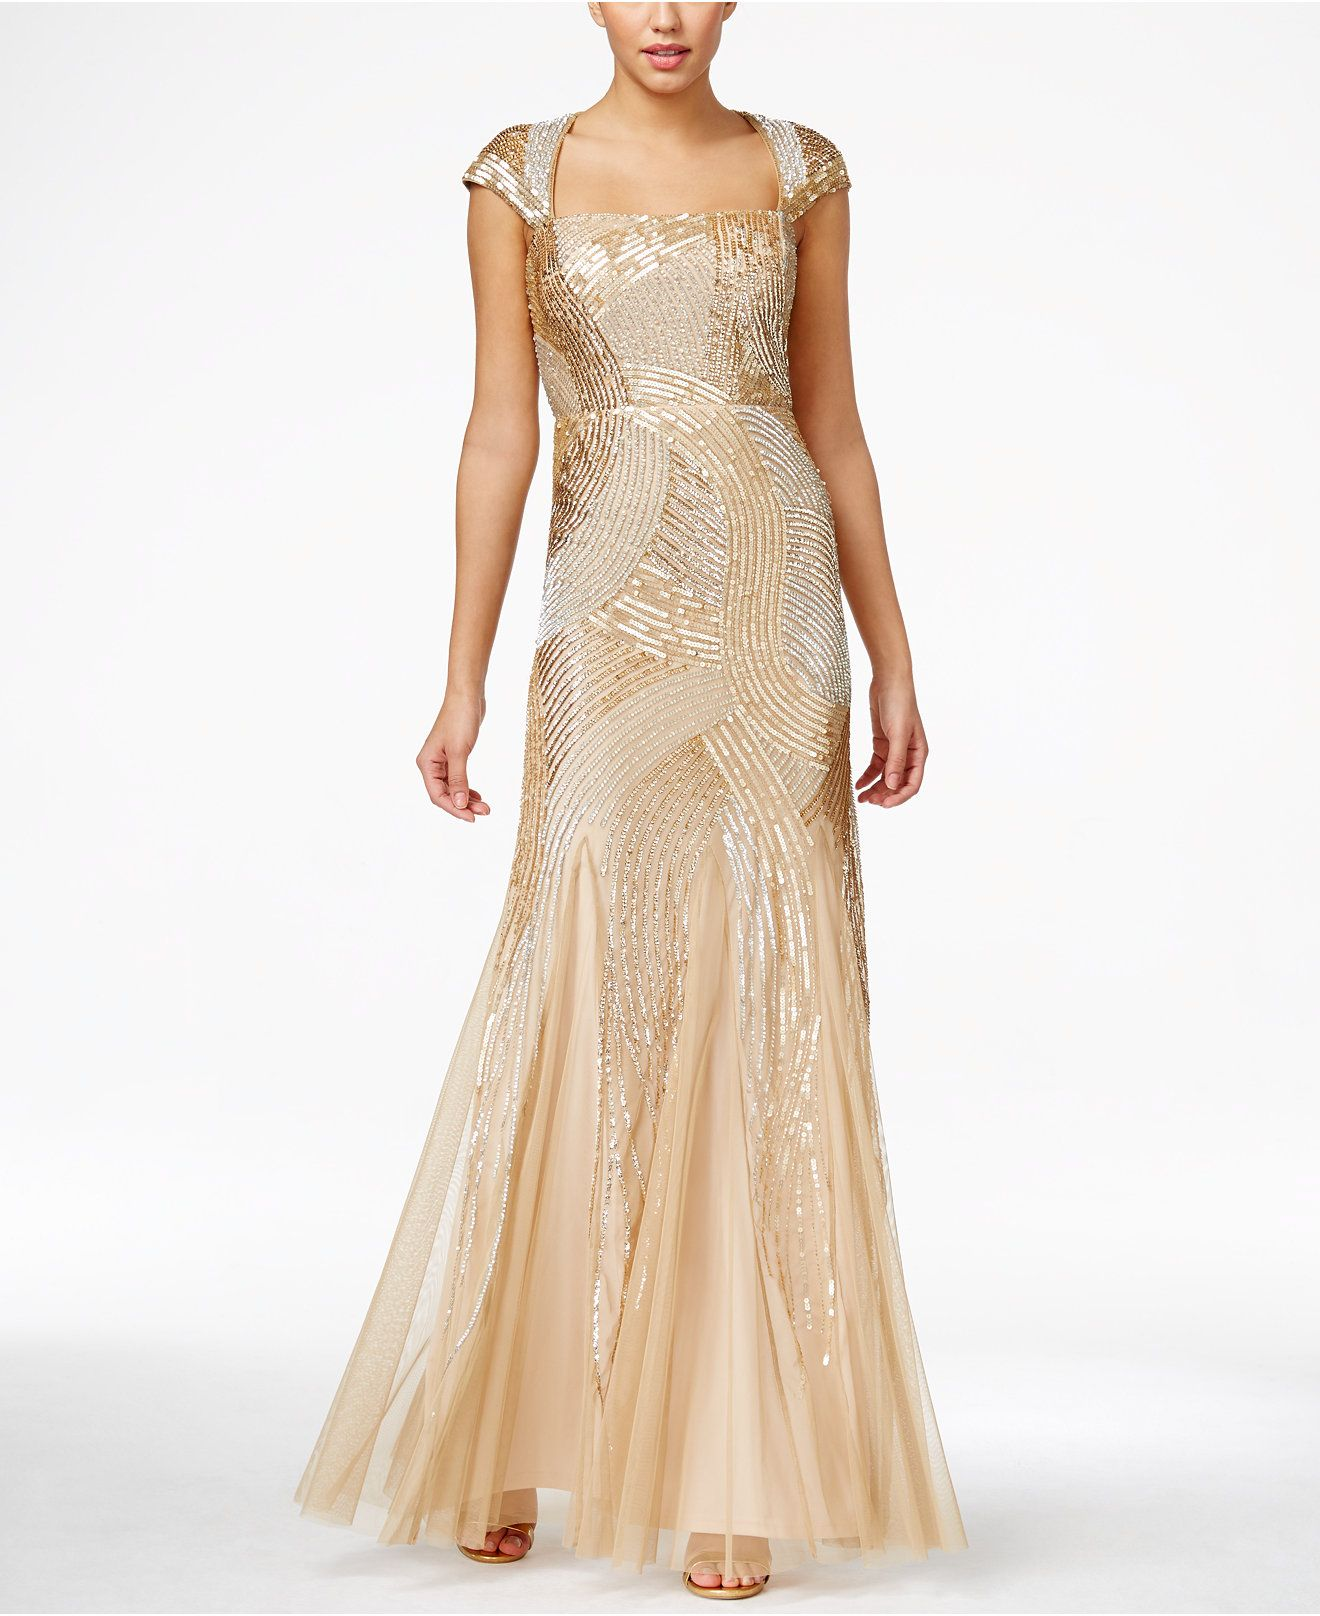 Adrianna Papell Petite Sequin Beaded Ball Gown - Dresses - Women ...